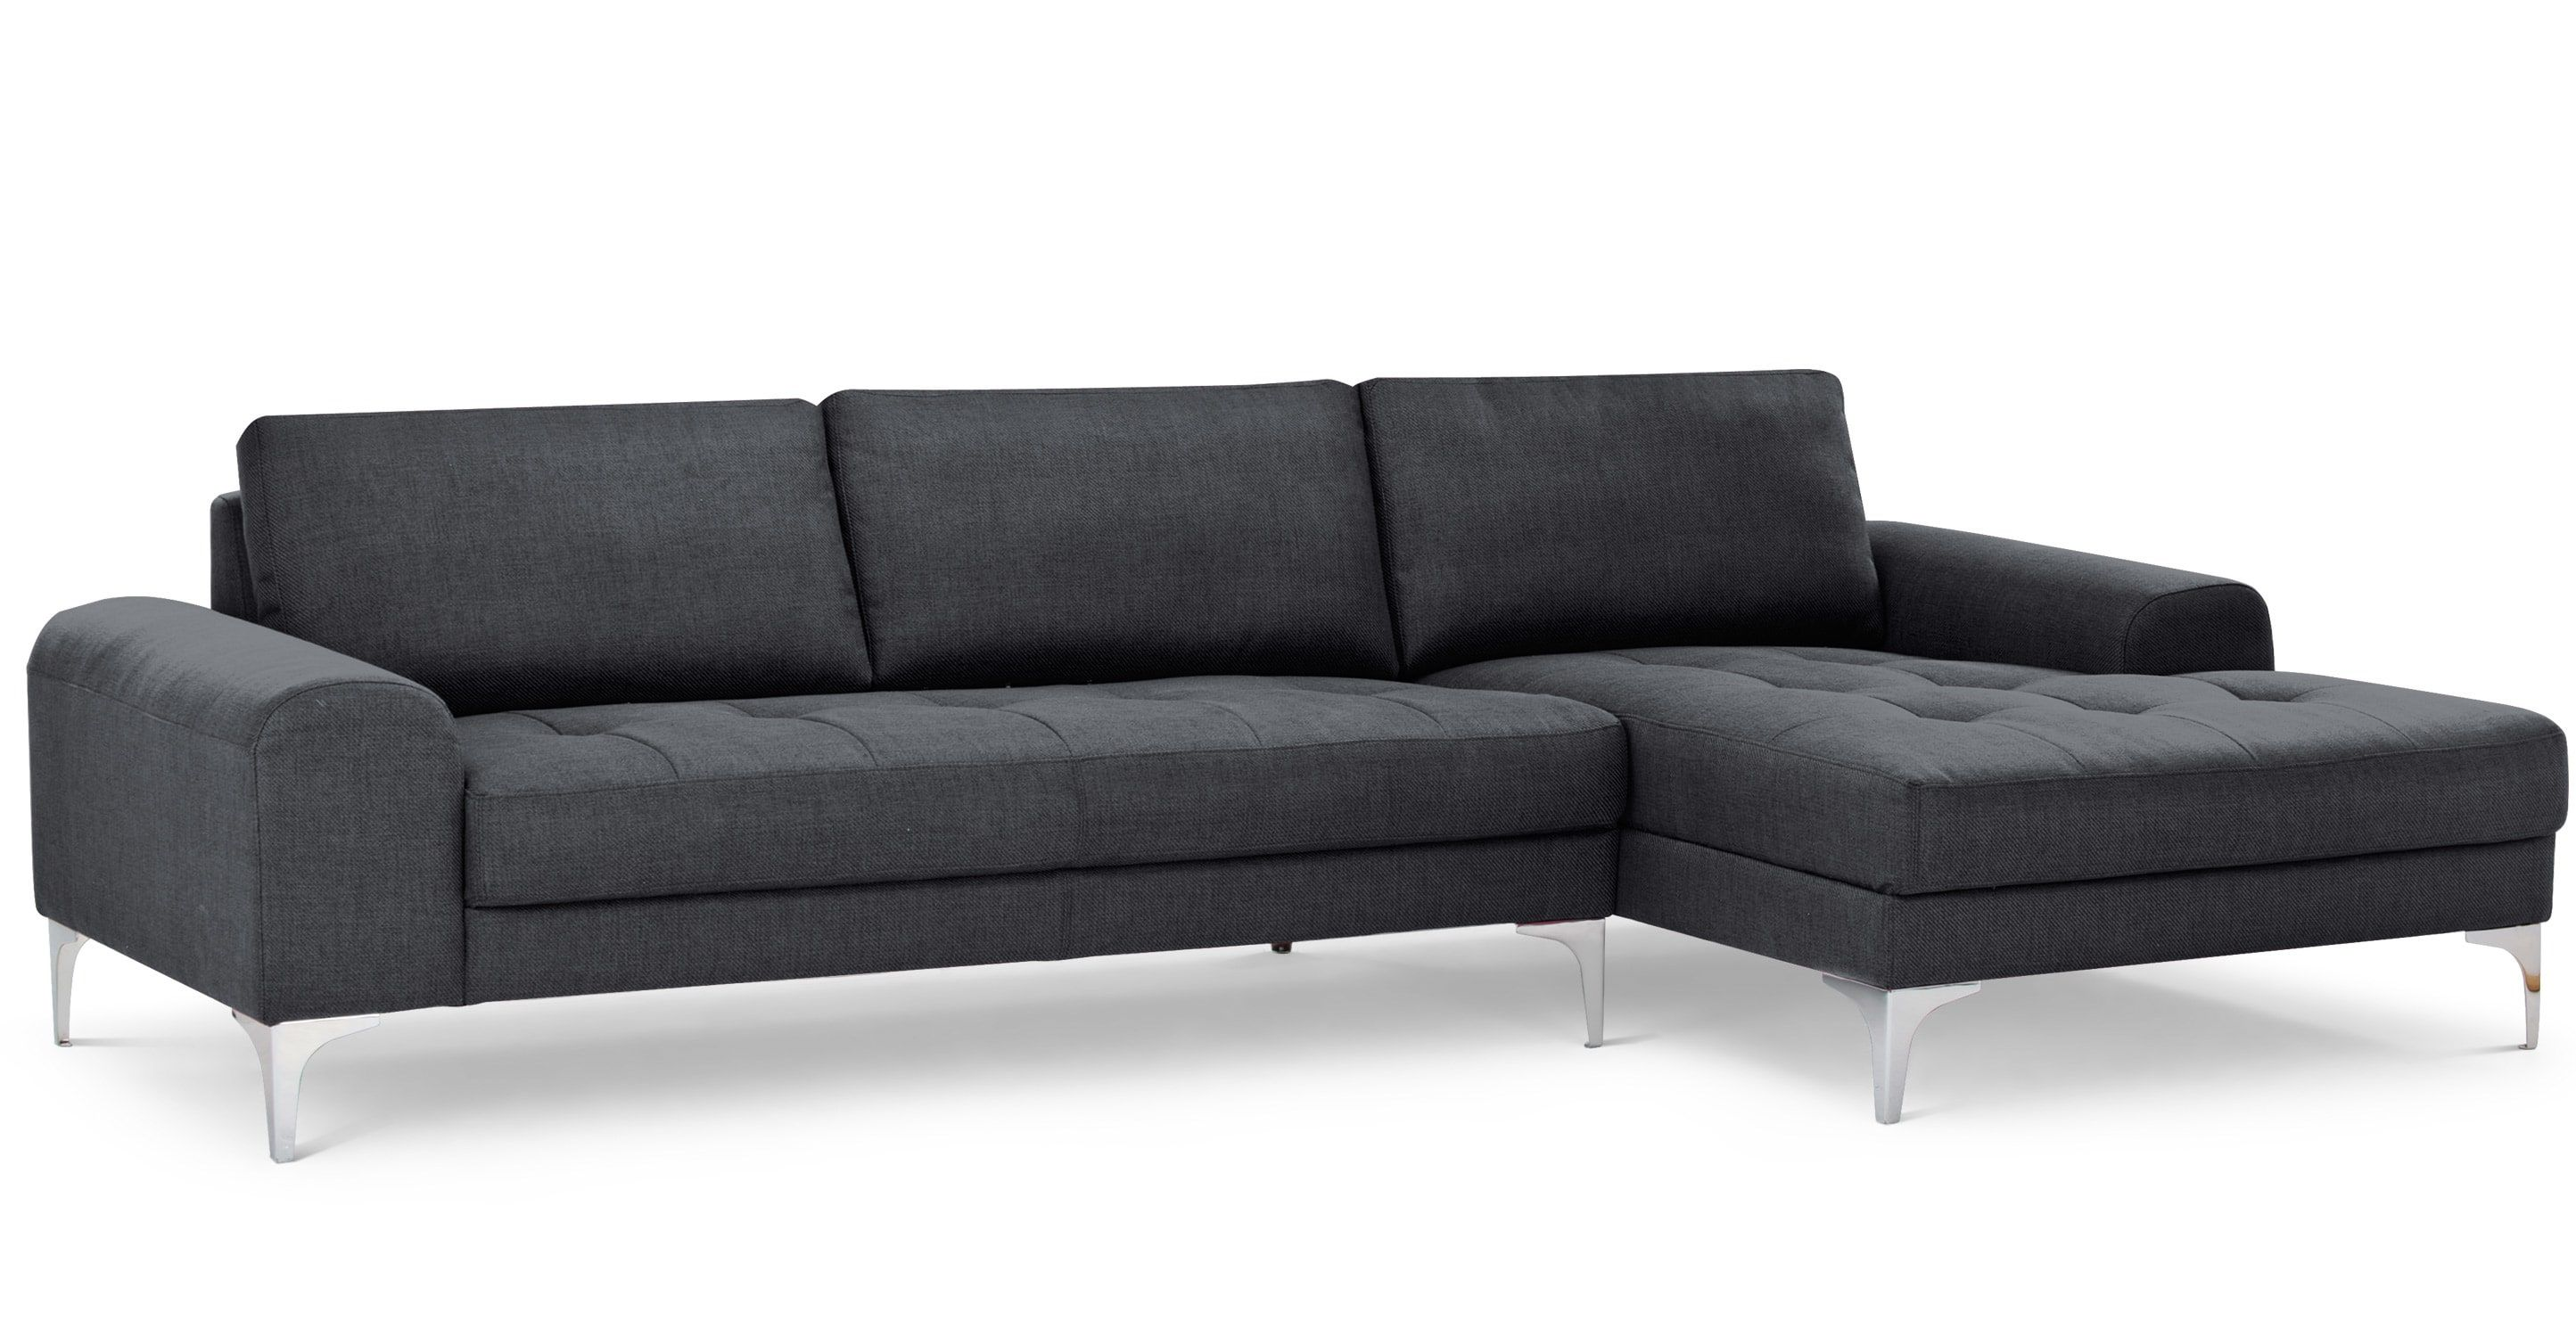 Vittorio Right Hand Facing Corner Sofa Group In Anthracite Grey In